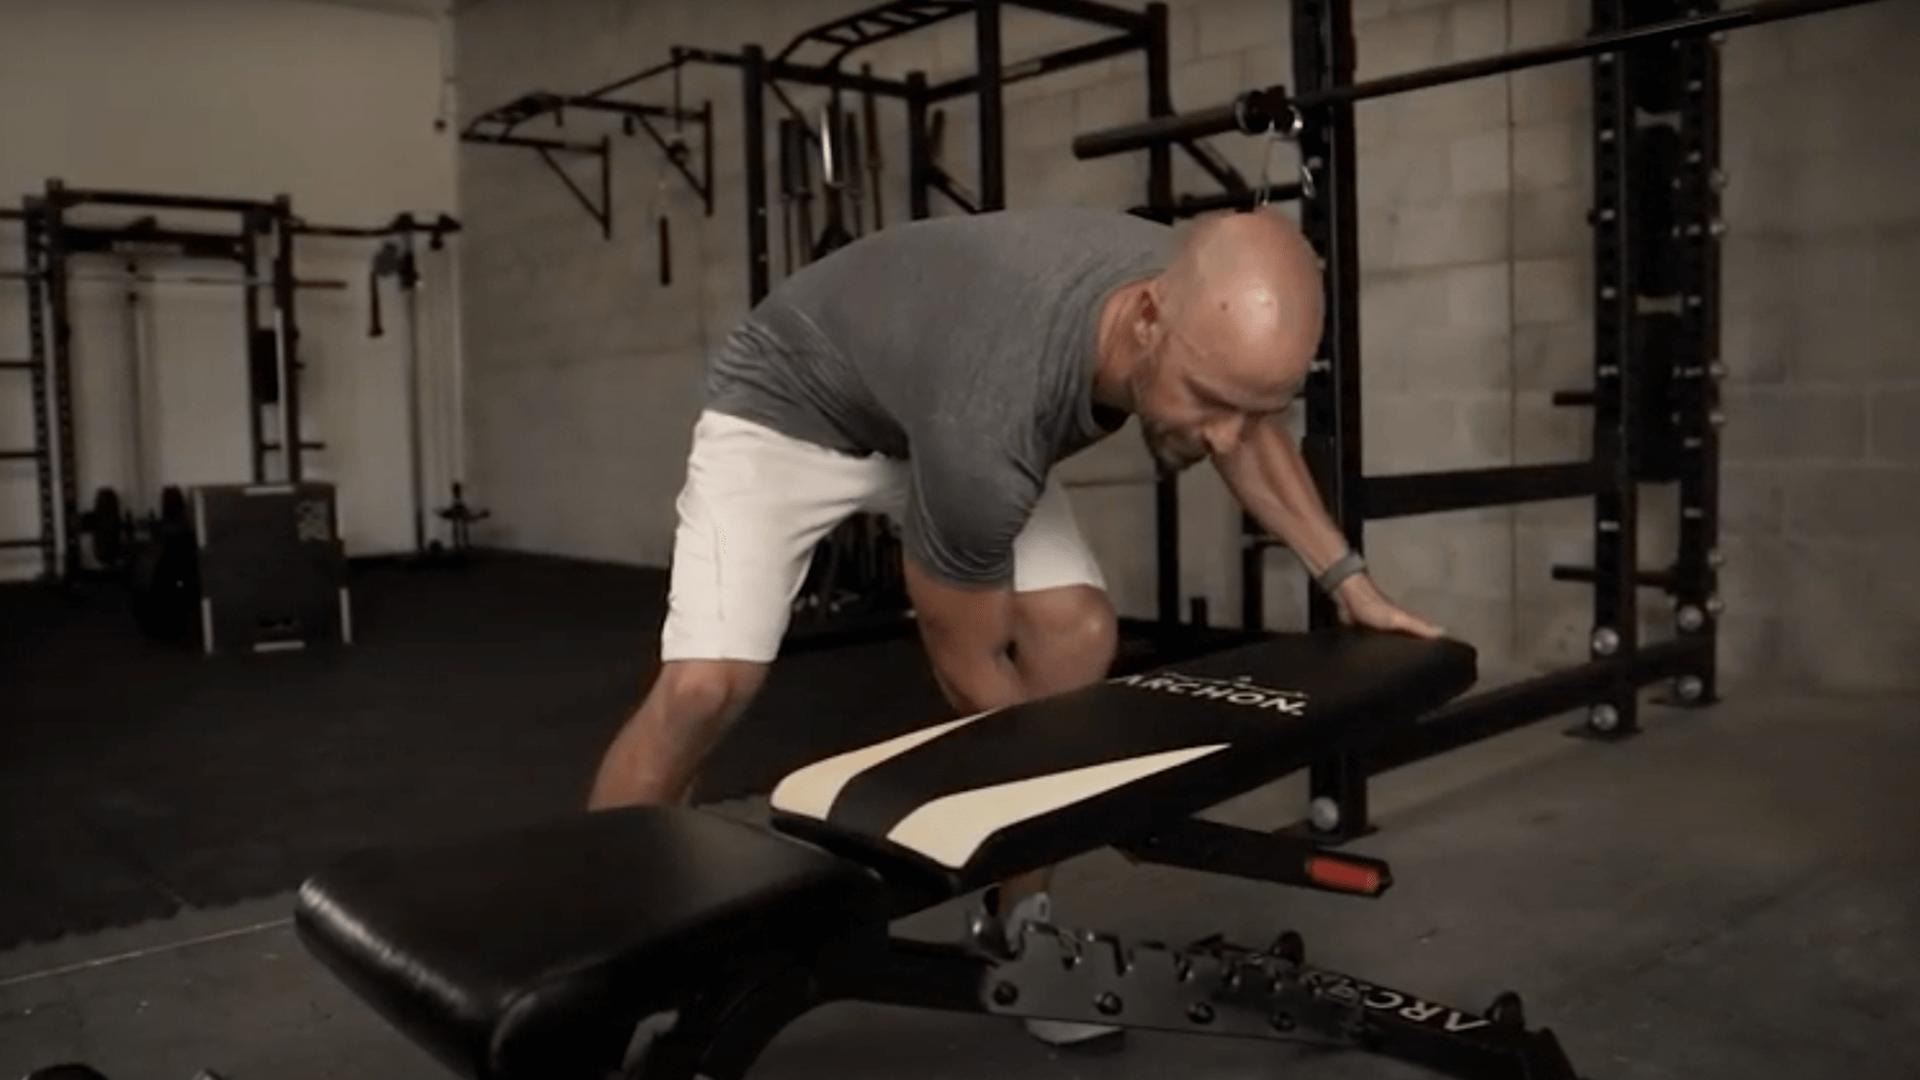 commercial bench - Archon Fitness - gym in your home - exercise equipment store